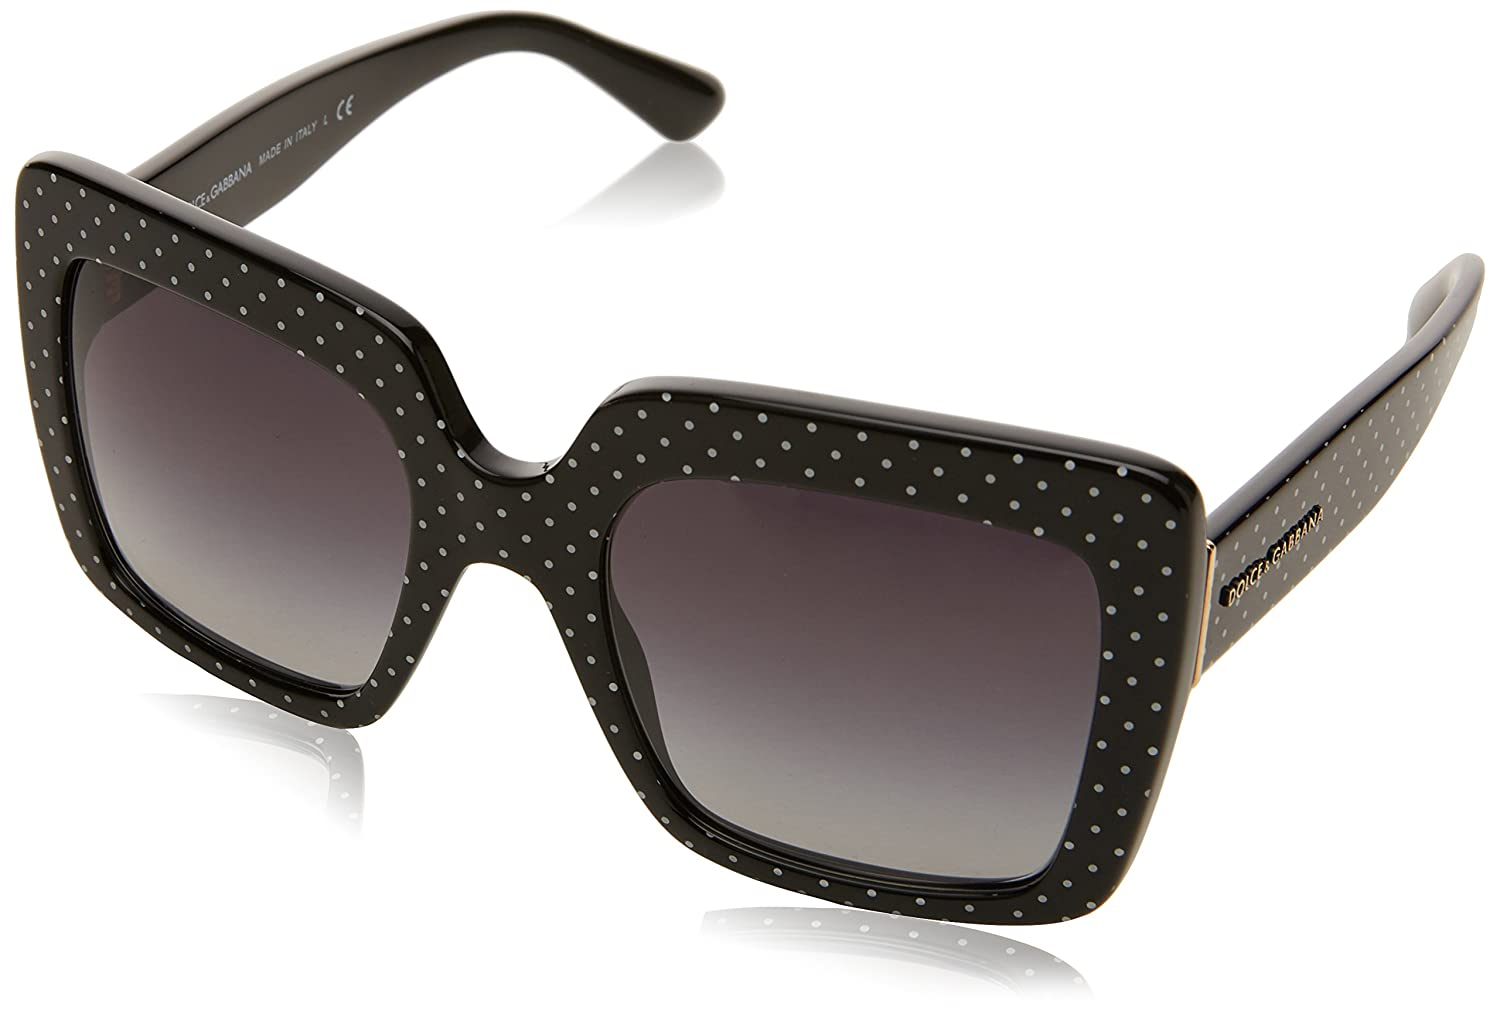 Amazon.com: Dolce & Gabbana DG4310 31268G (Black - White ...